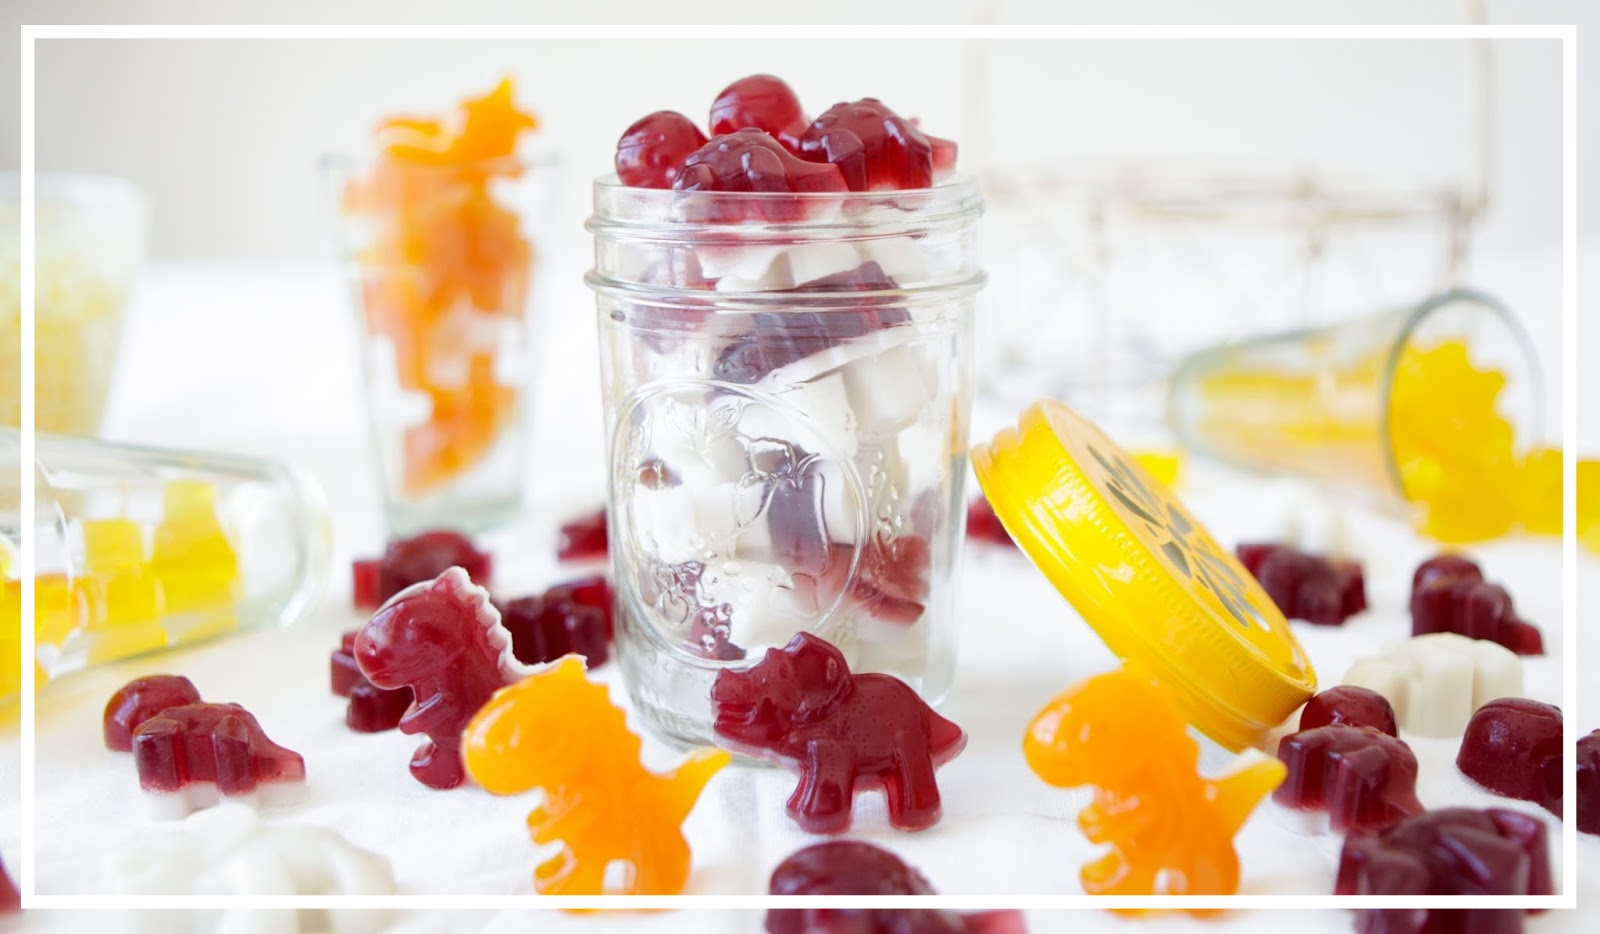 Cute right? Doesn't it make you want to eat a dinosaur? Image from http://www.loveurbelly.com/2014/01/yummy-gummy-lollies-made-with-gut.html